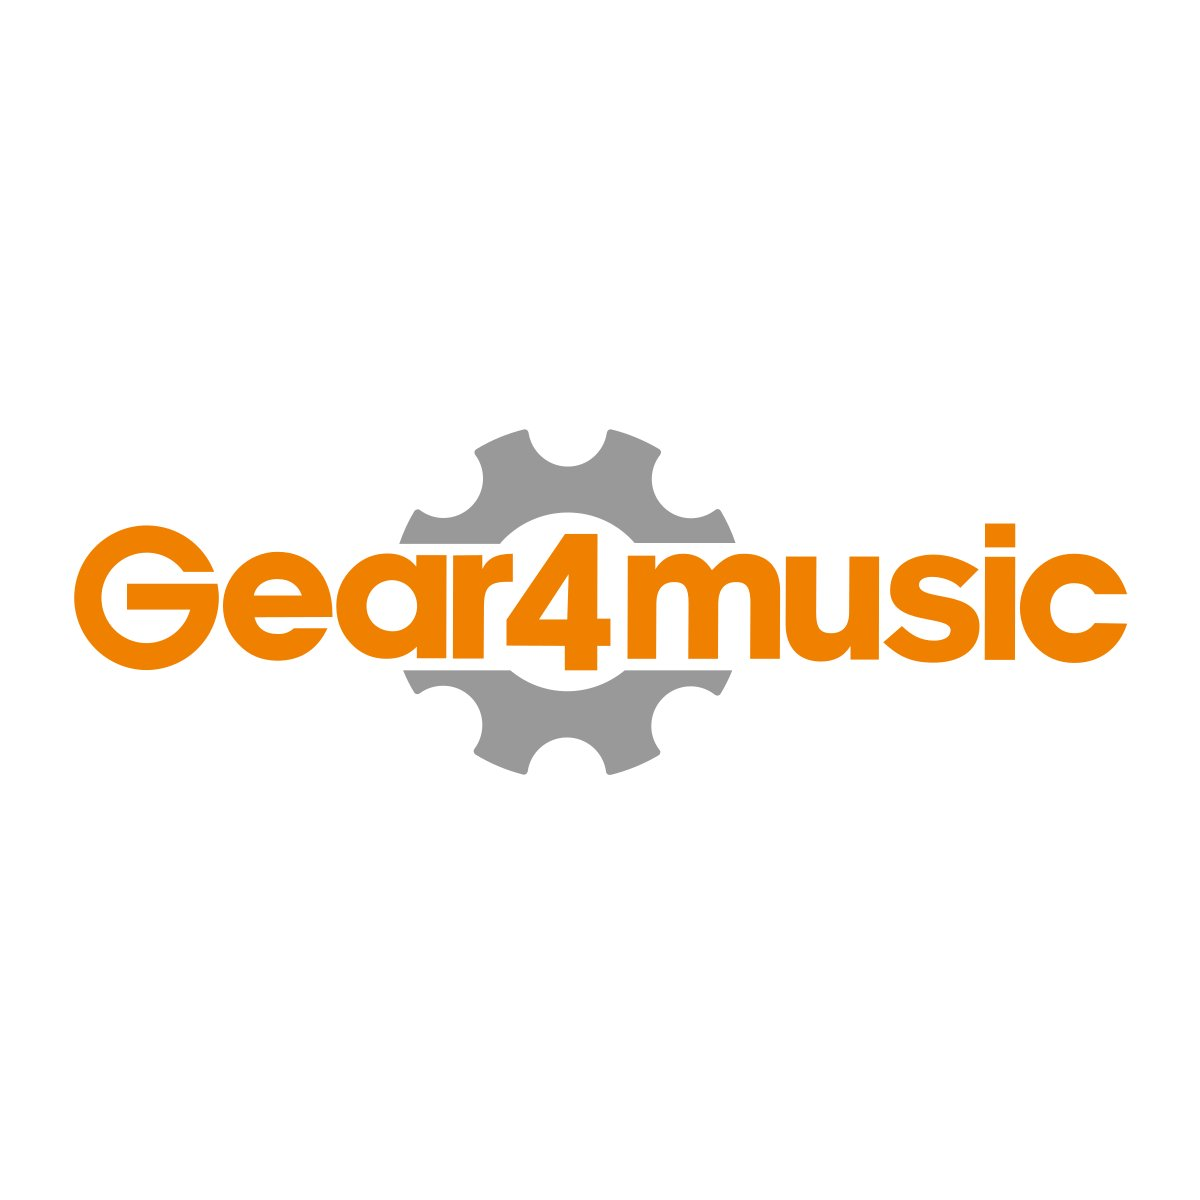 Studio Shaker de Metal de Gear4music